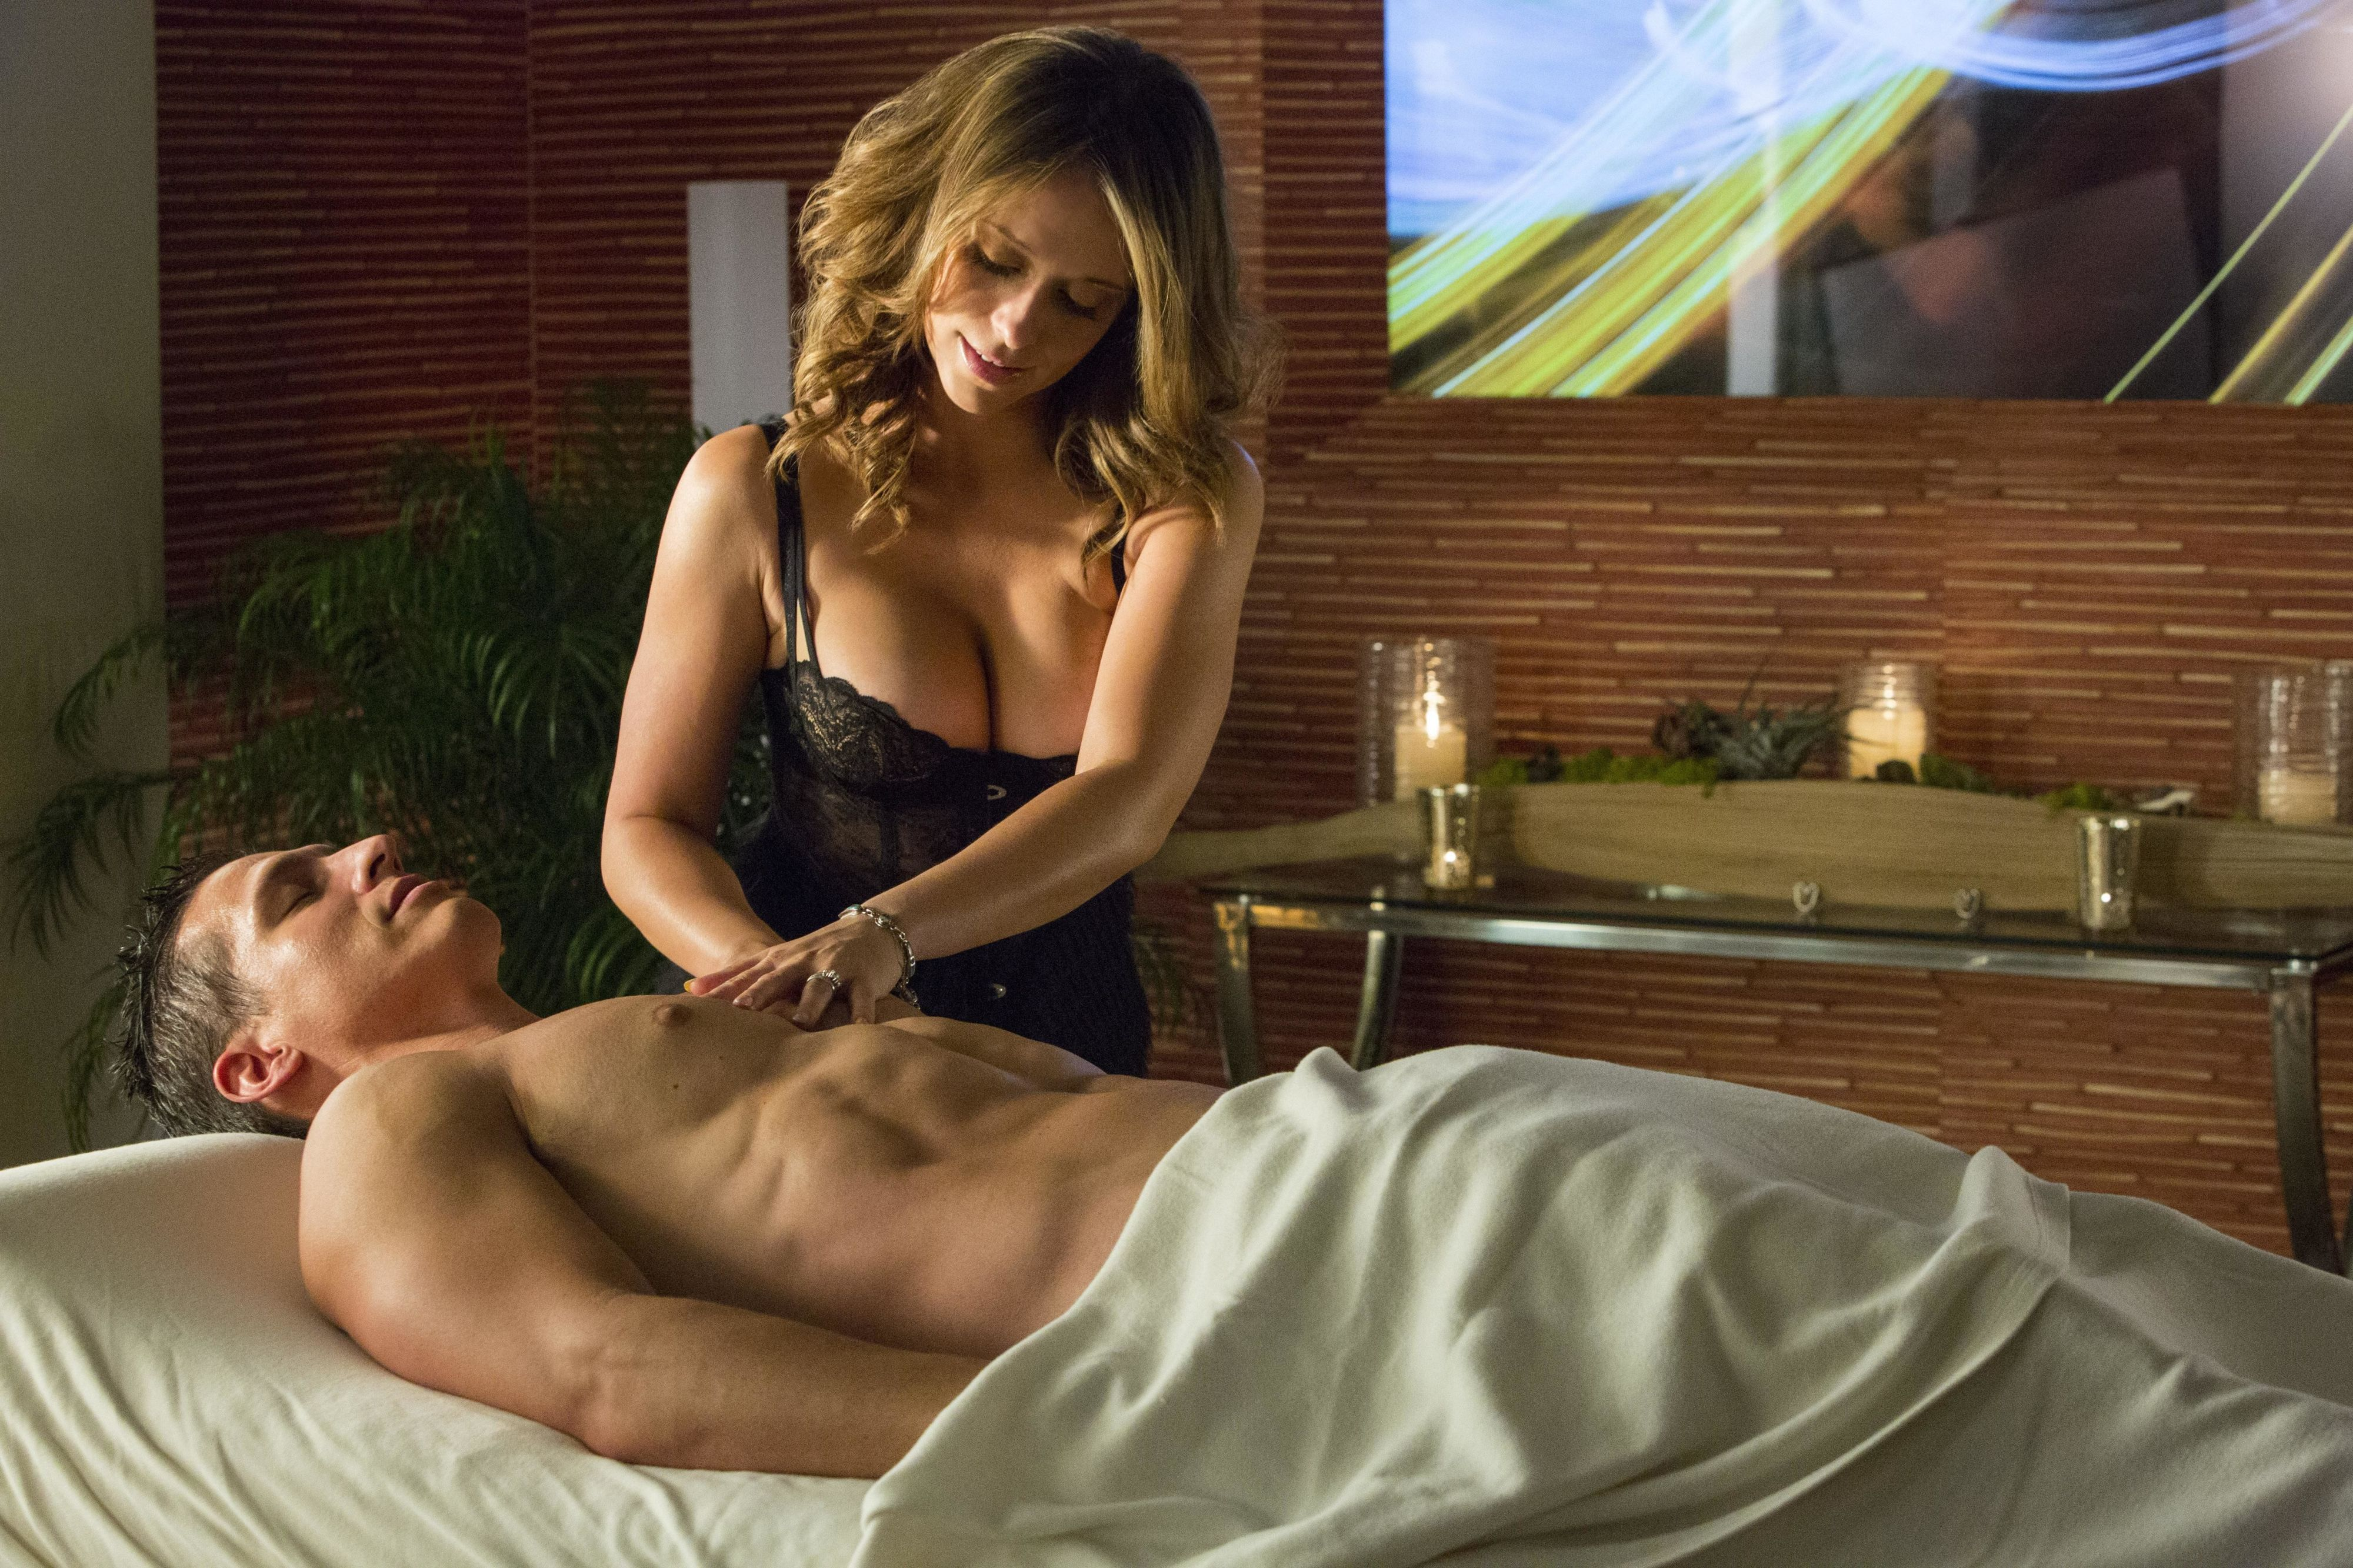 Confessions of an erotic masseuse